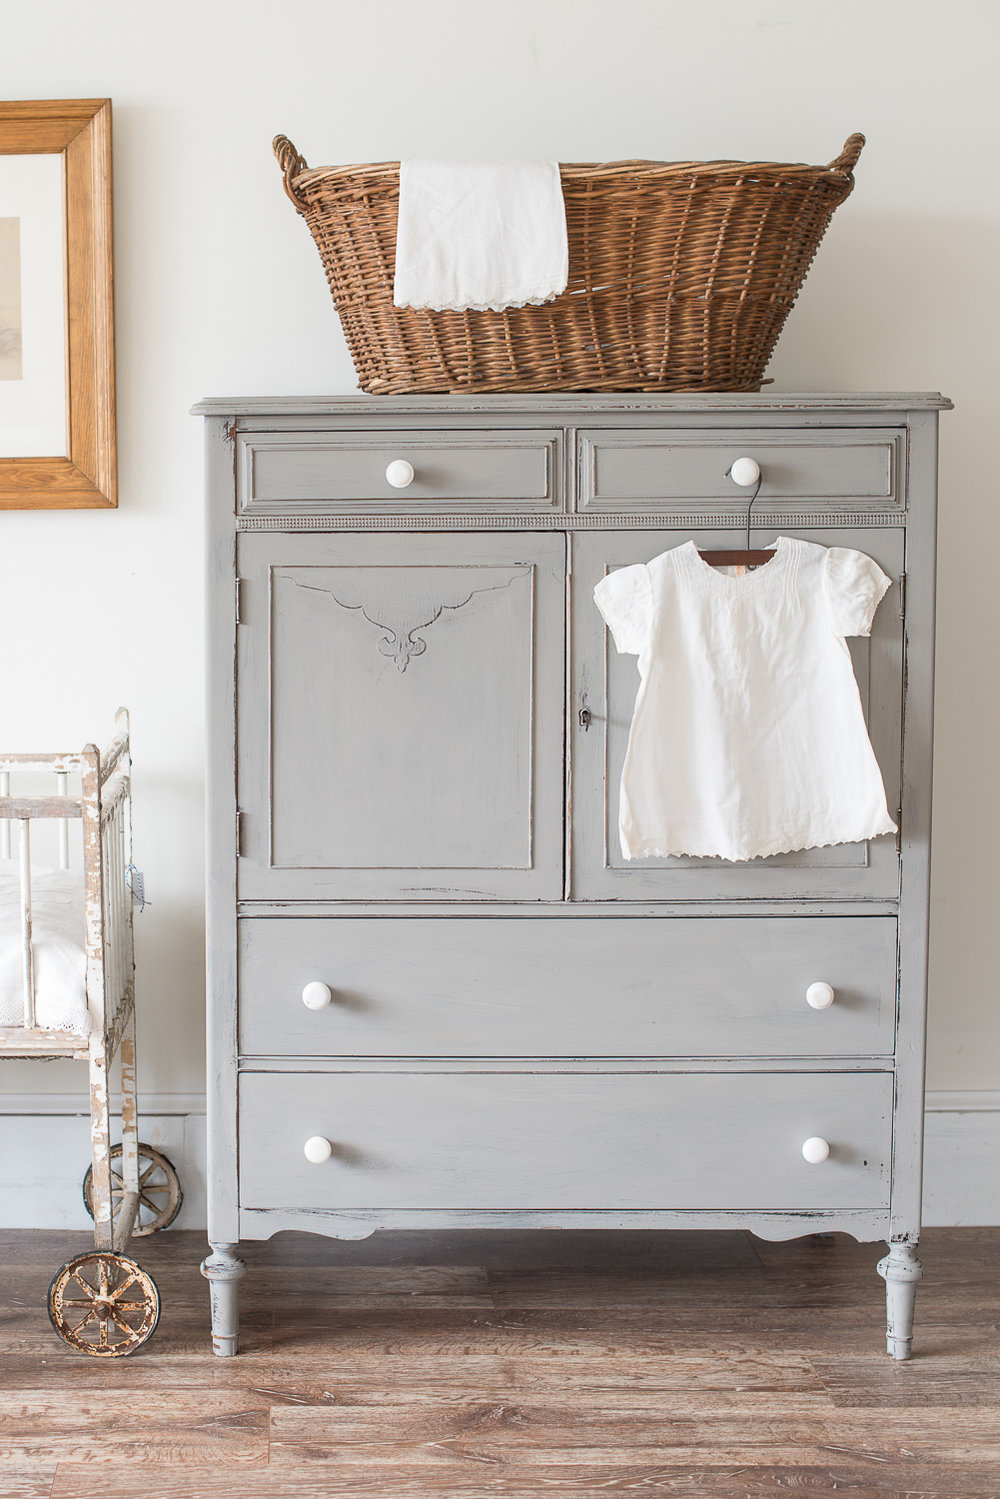 Looking for inspiration? Miss Mustard Seed has a wonderful home decorating and painting blog!